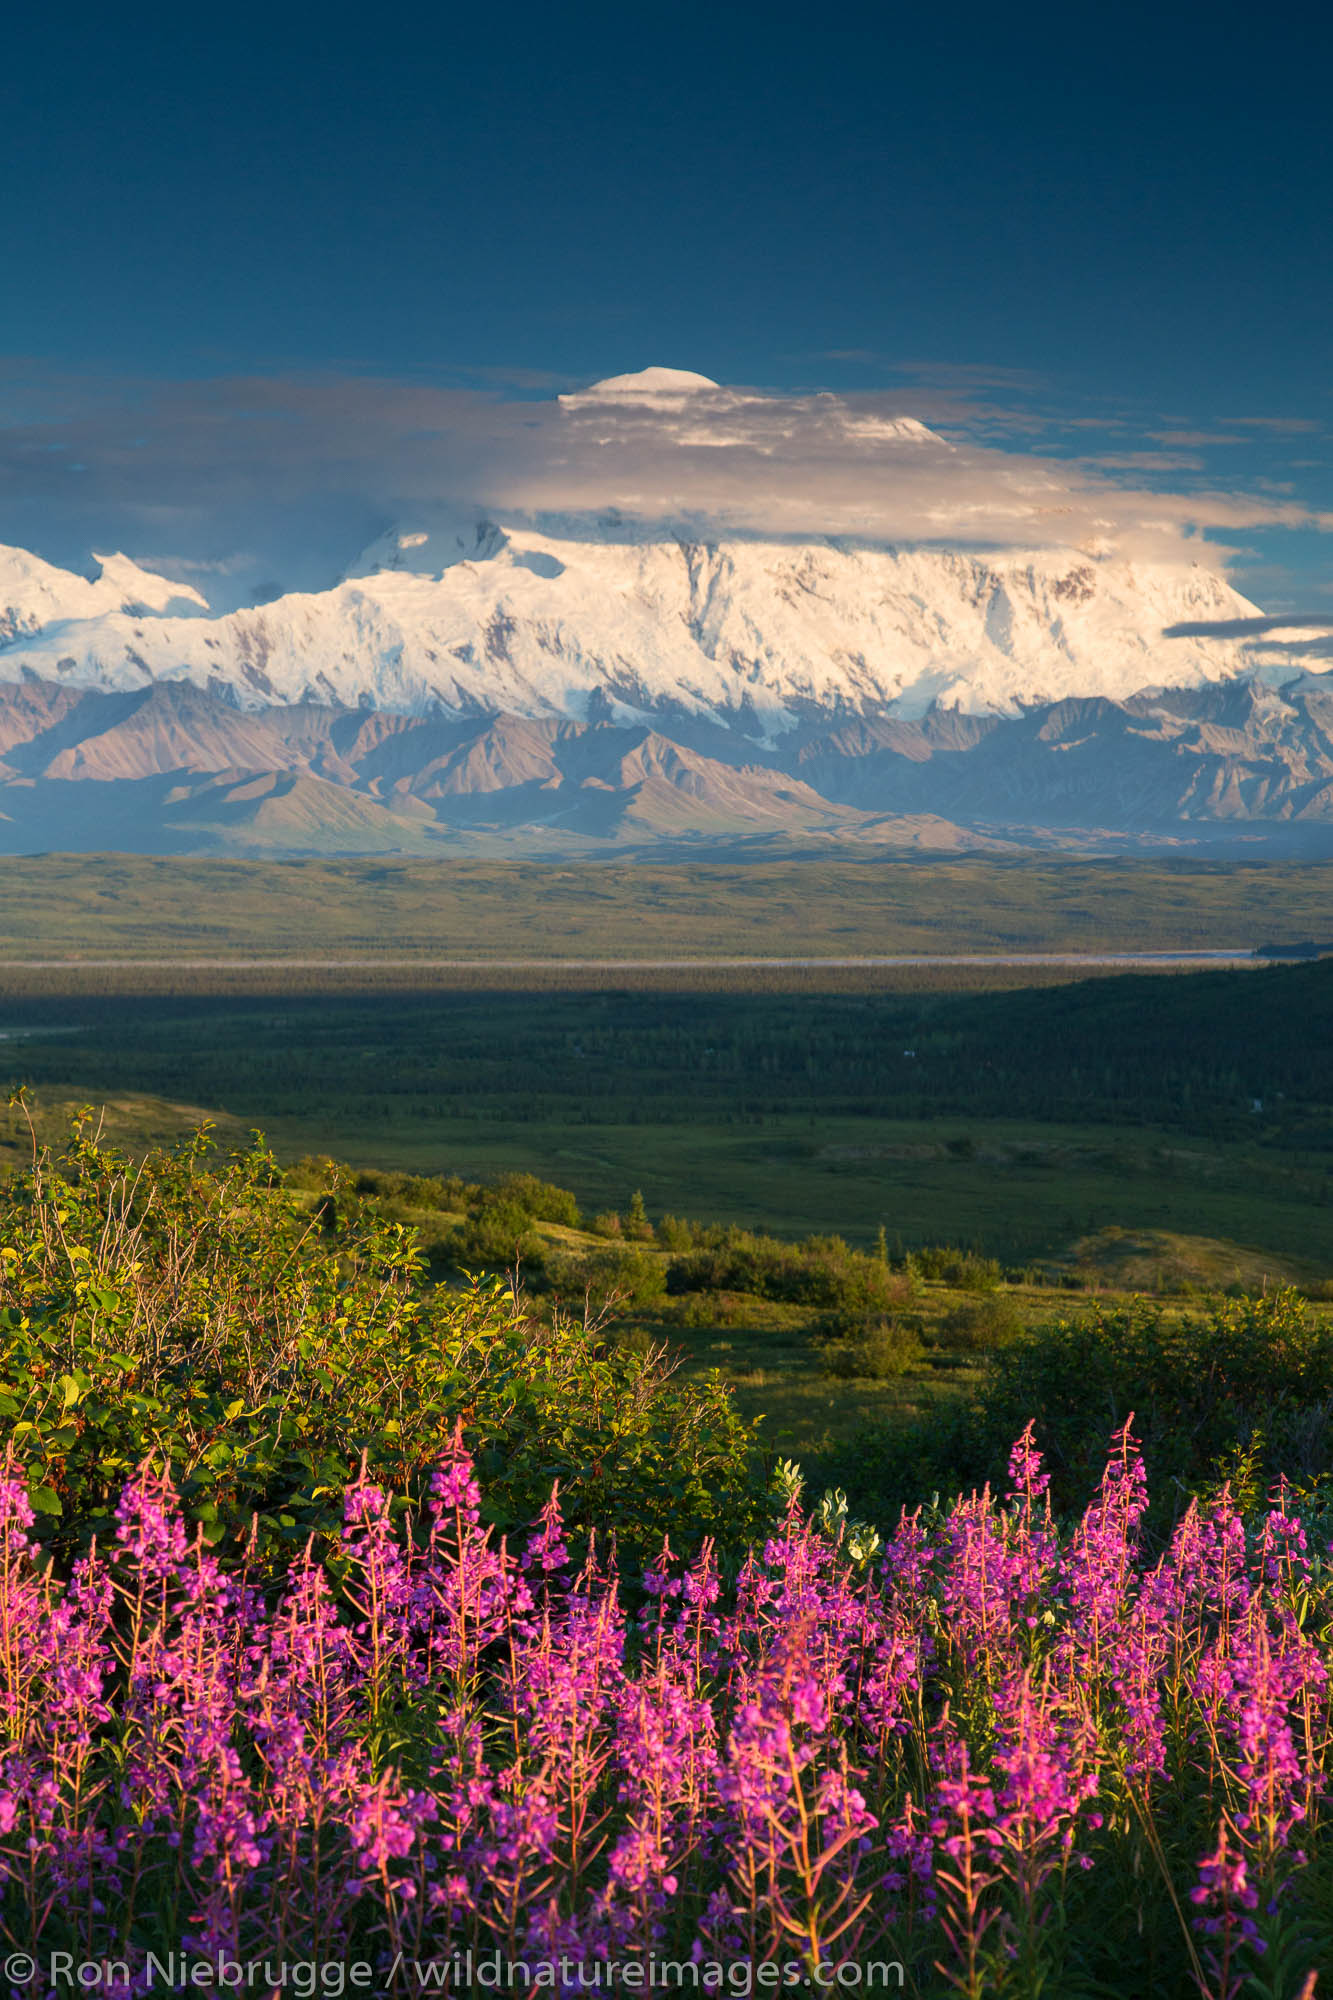 Fireweed and Mt. McKinley, locally known as Denali, Denali National Park, Alaska.